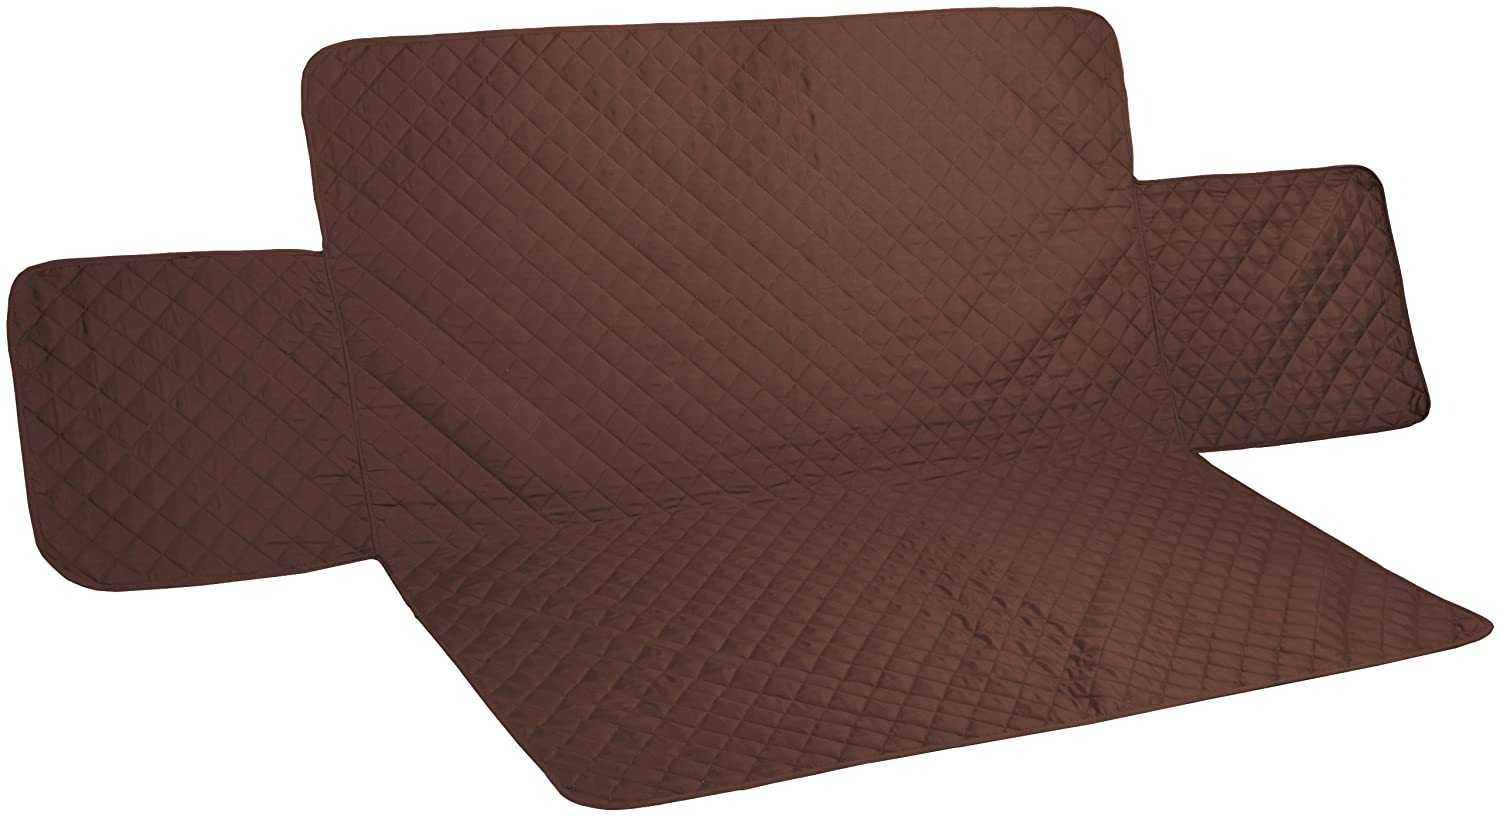 Amazon.com: Pegasus Home Reversible Furniture Protector, Sofa,  Chocolate/Tan, 75 Inch X 110 Inch: Home U0026 Kitchen